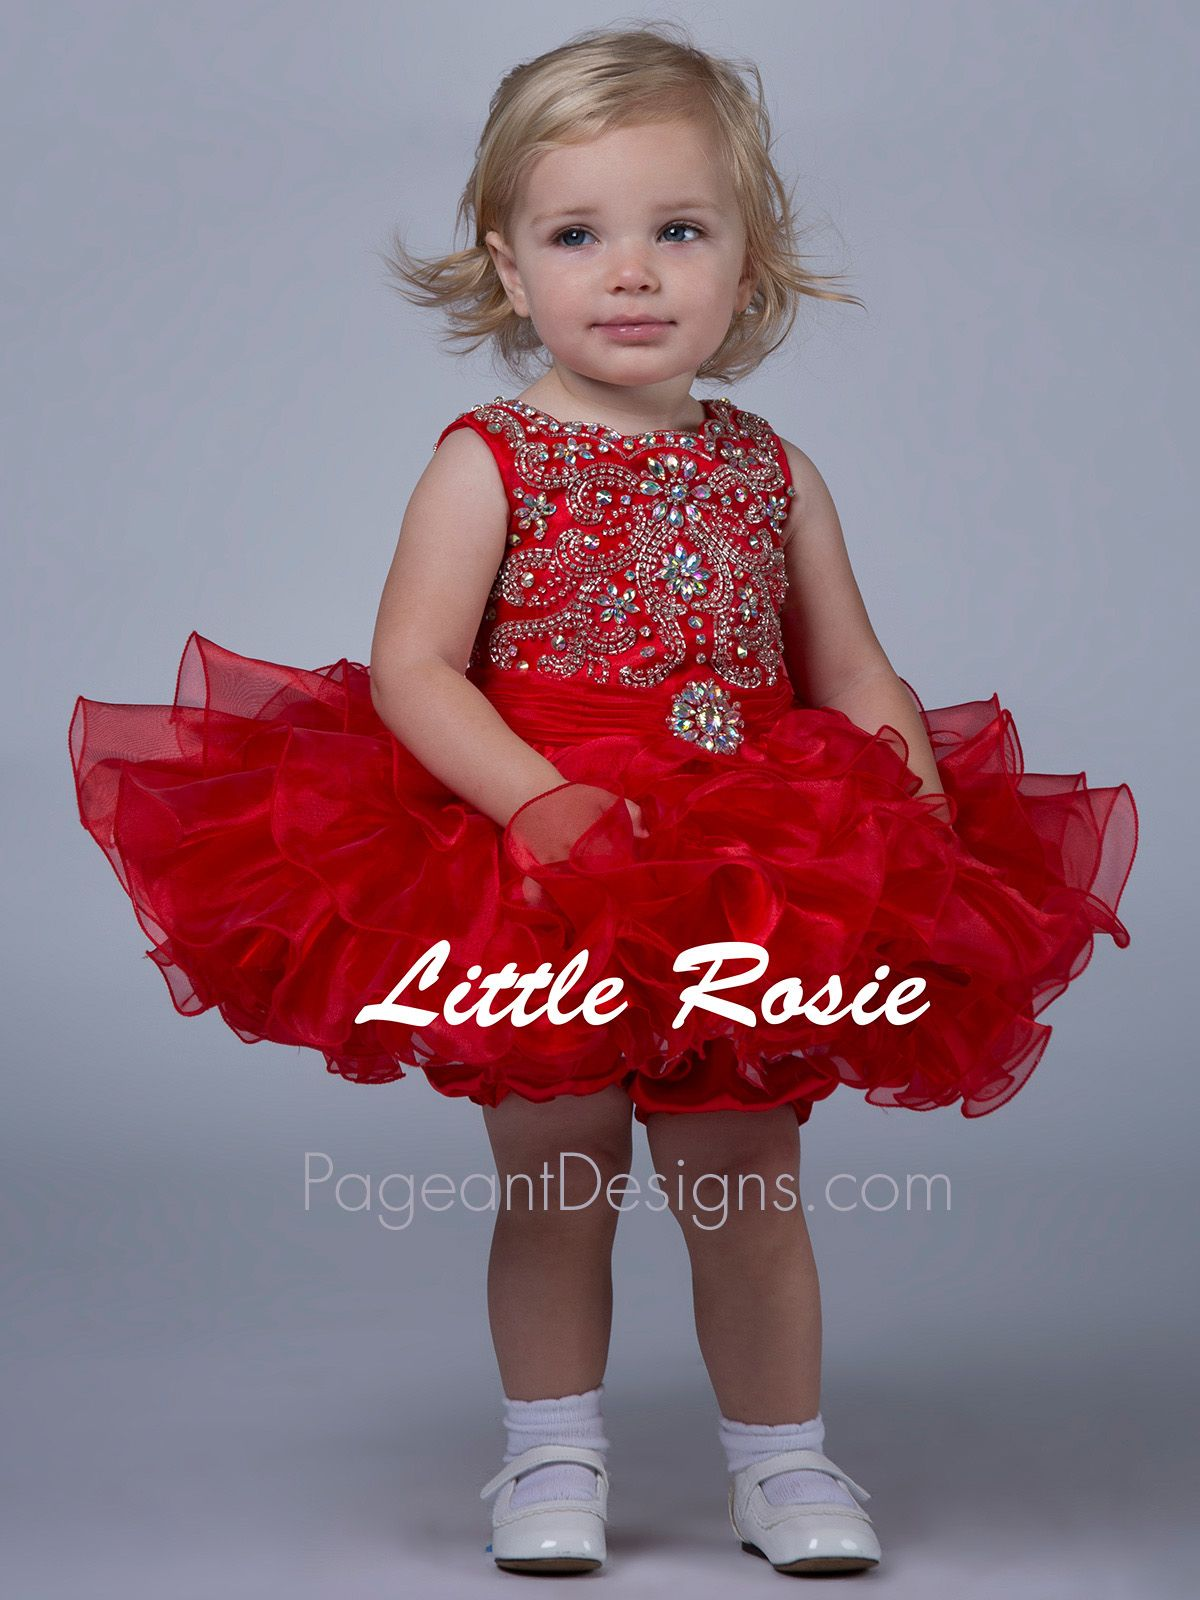 Red pageant dresses for infants are perfect for a national